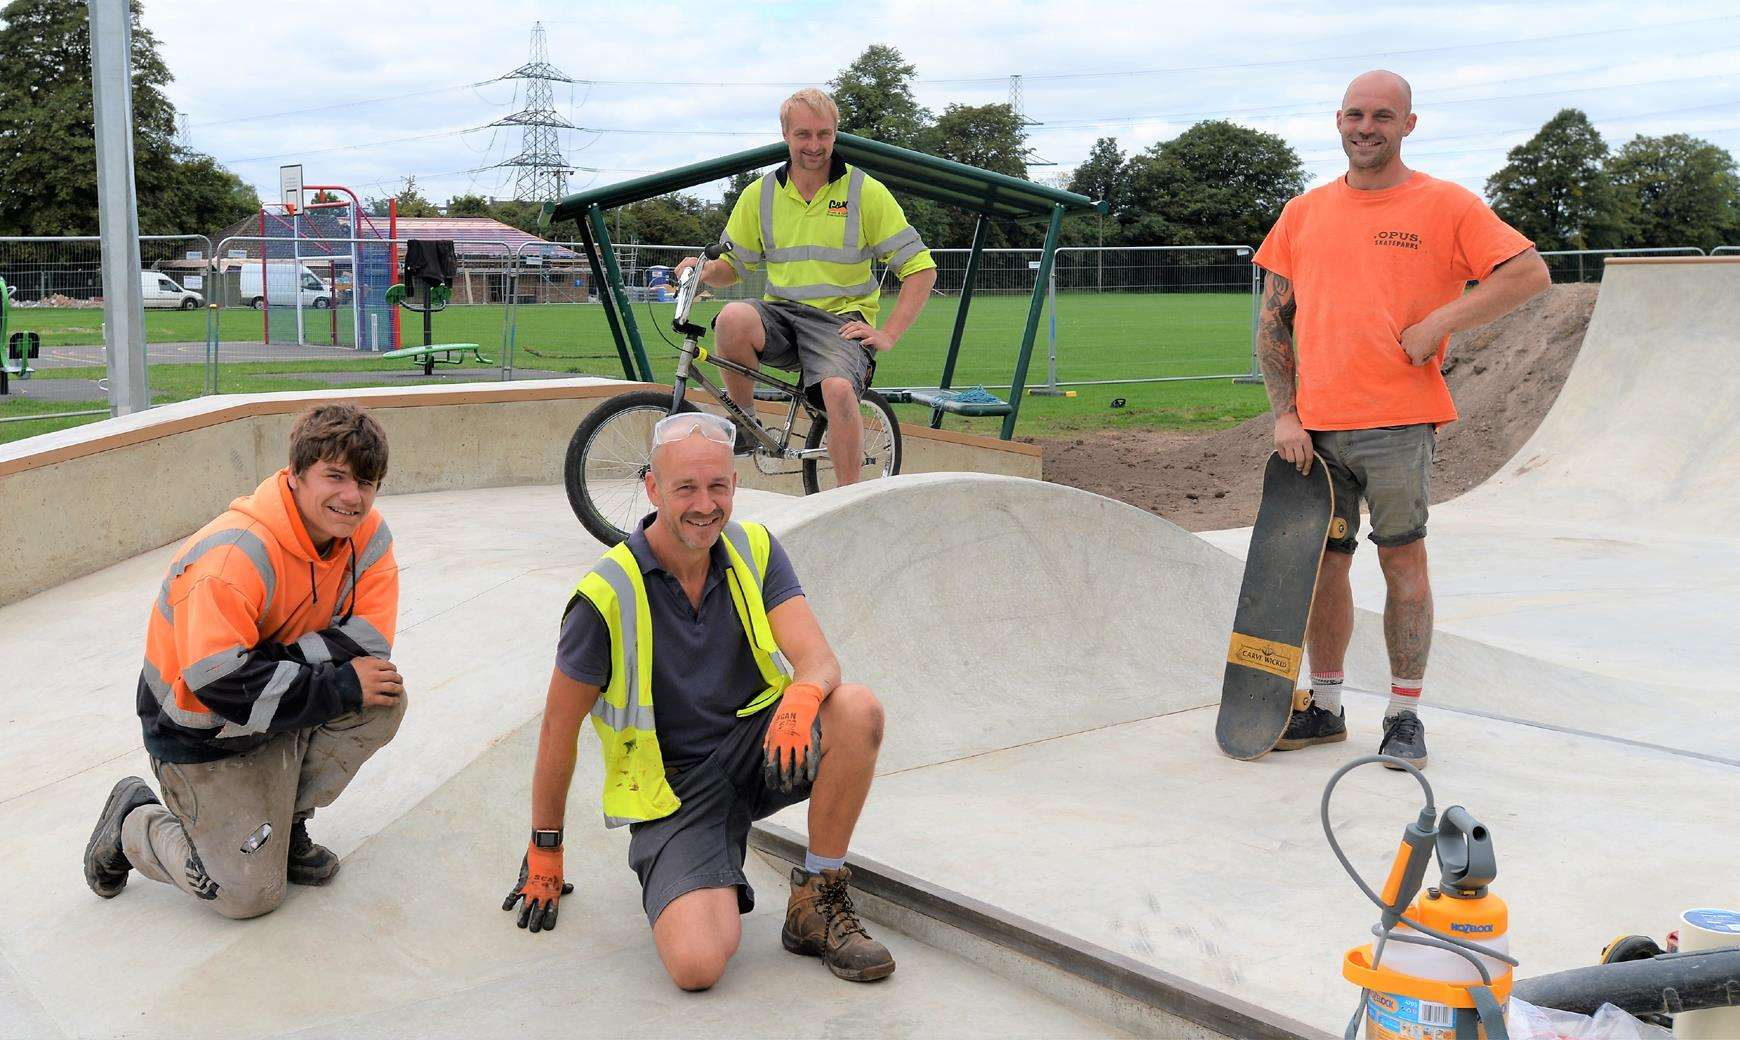 Members of the building team are putting the finishing touches to Burwell's new skatepark.